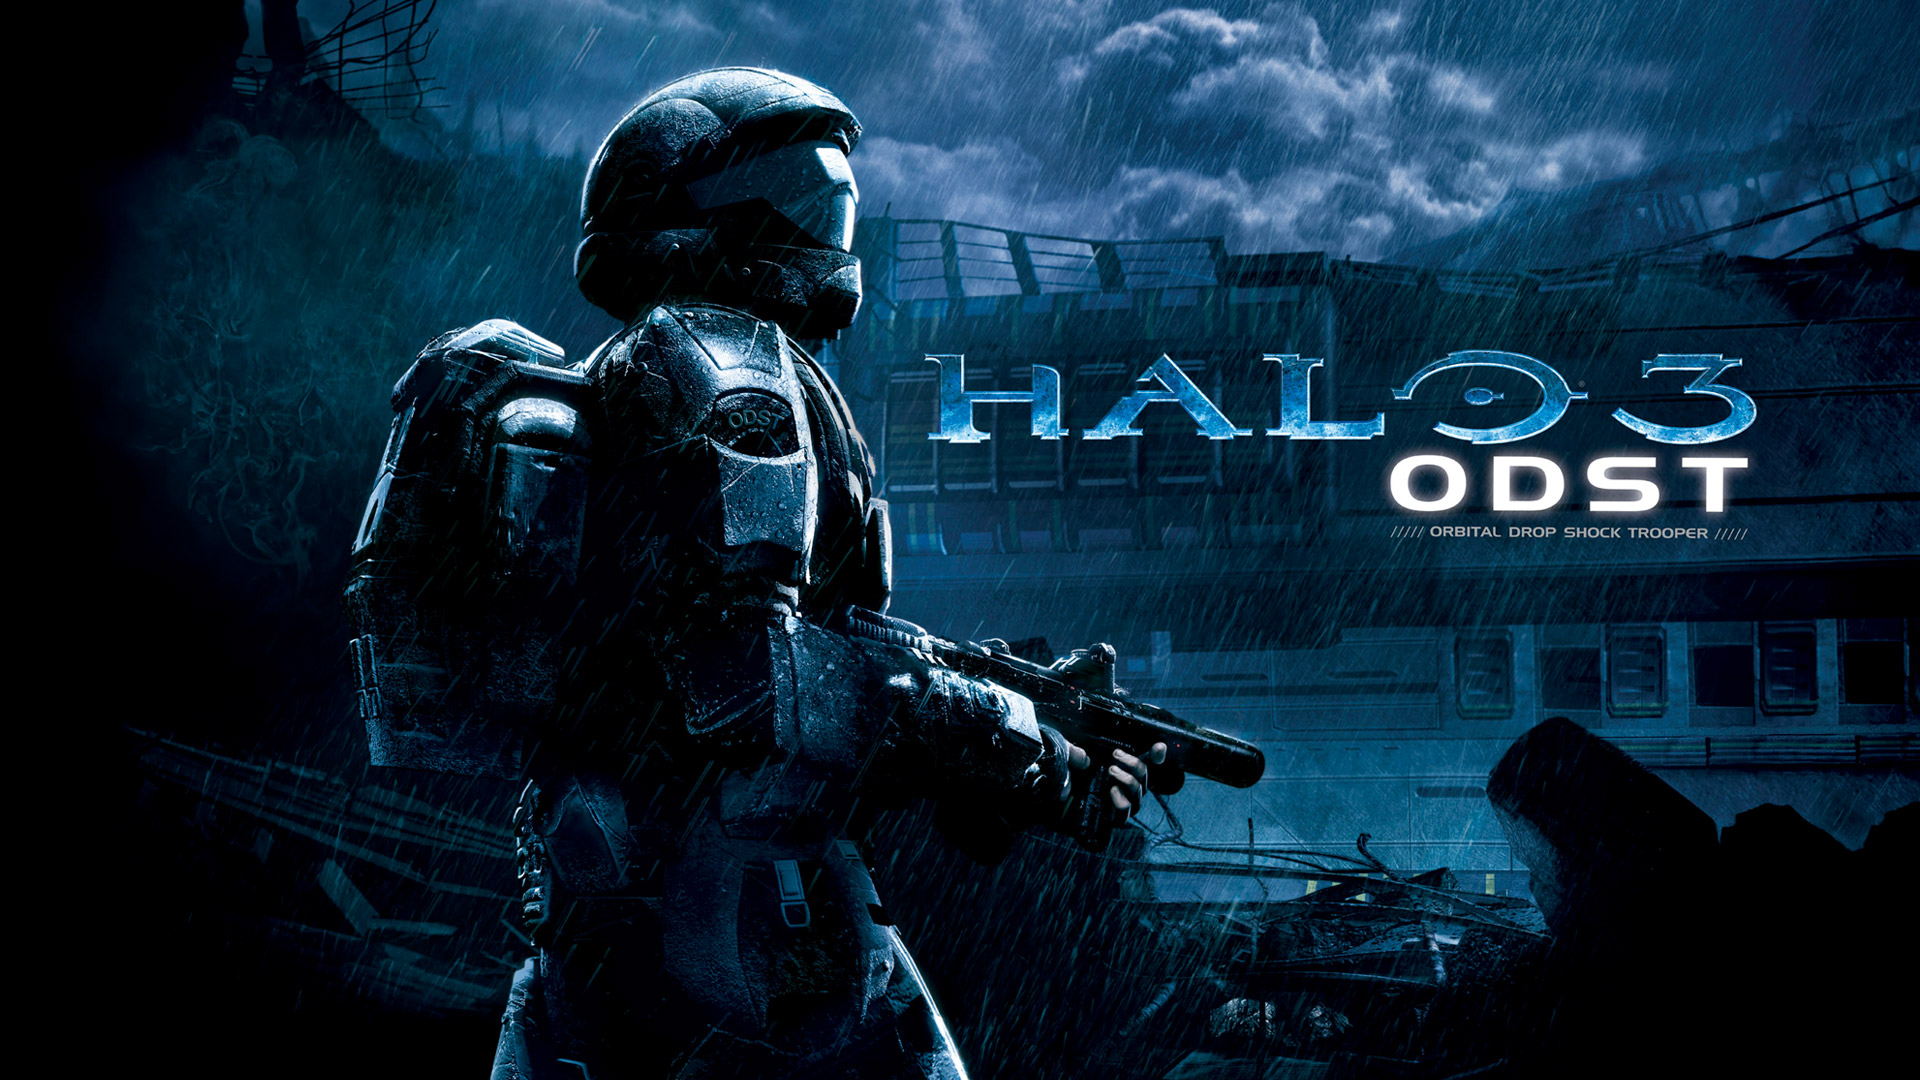 Halo 3 ODST Wallpaper in 1920x1080 1920x1080